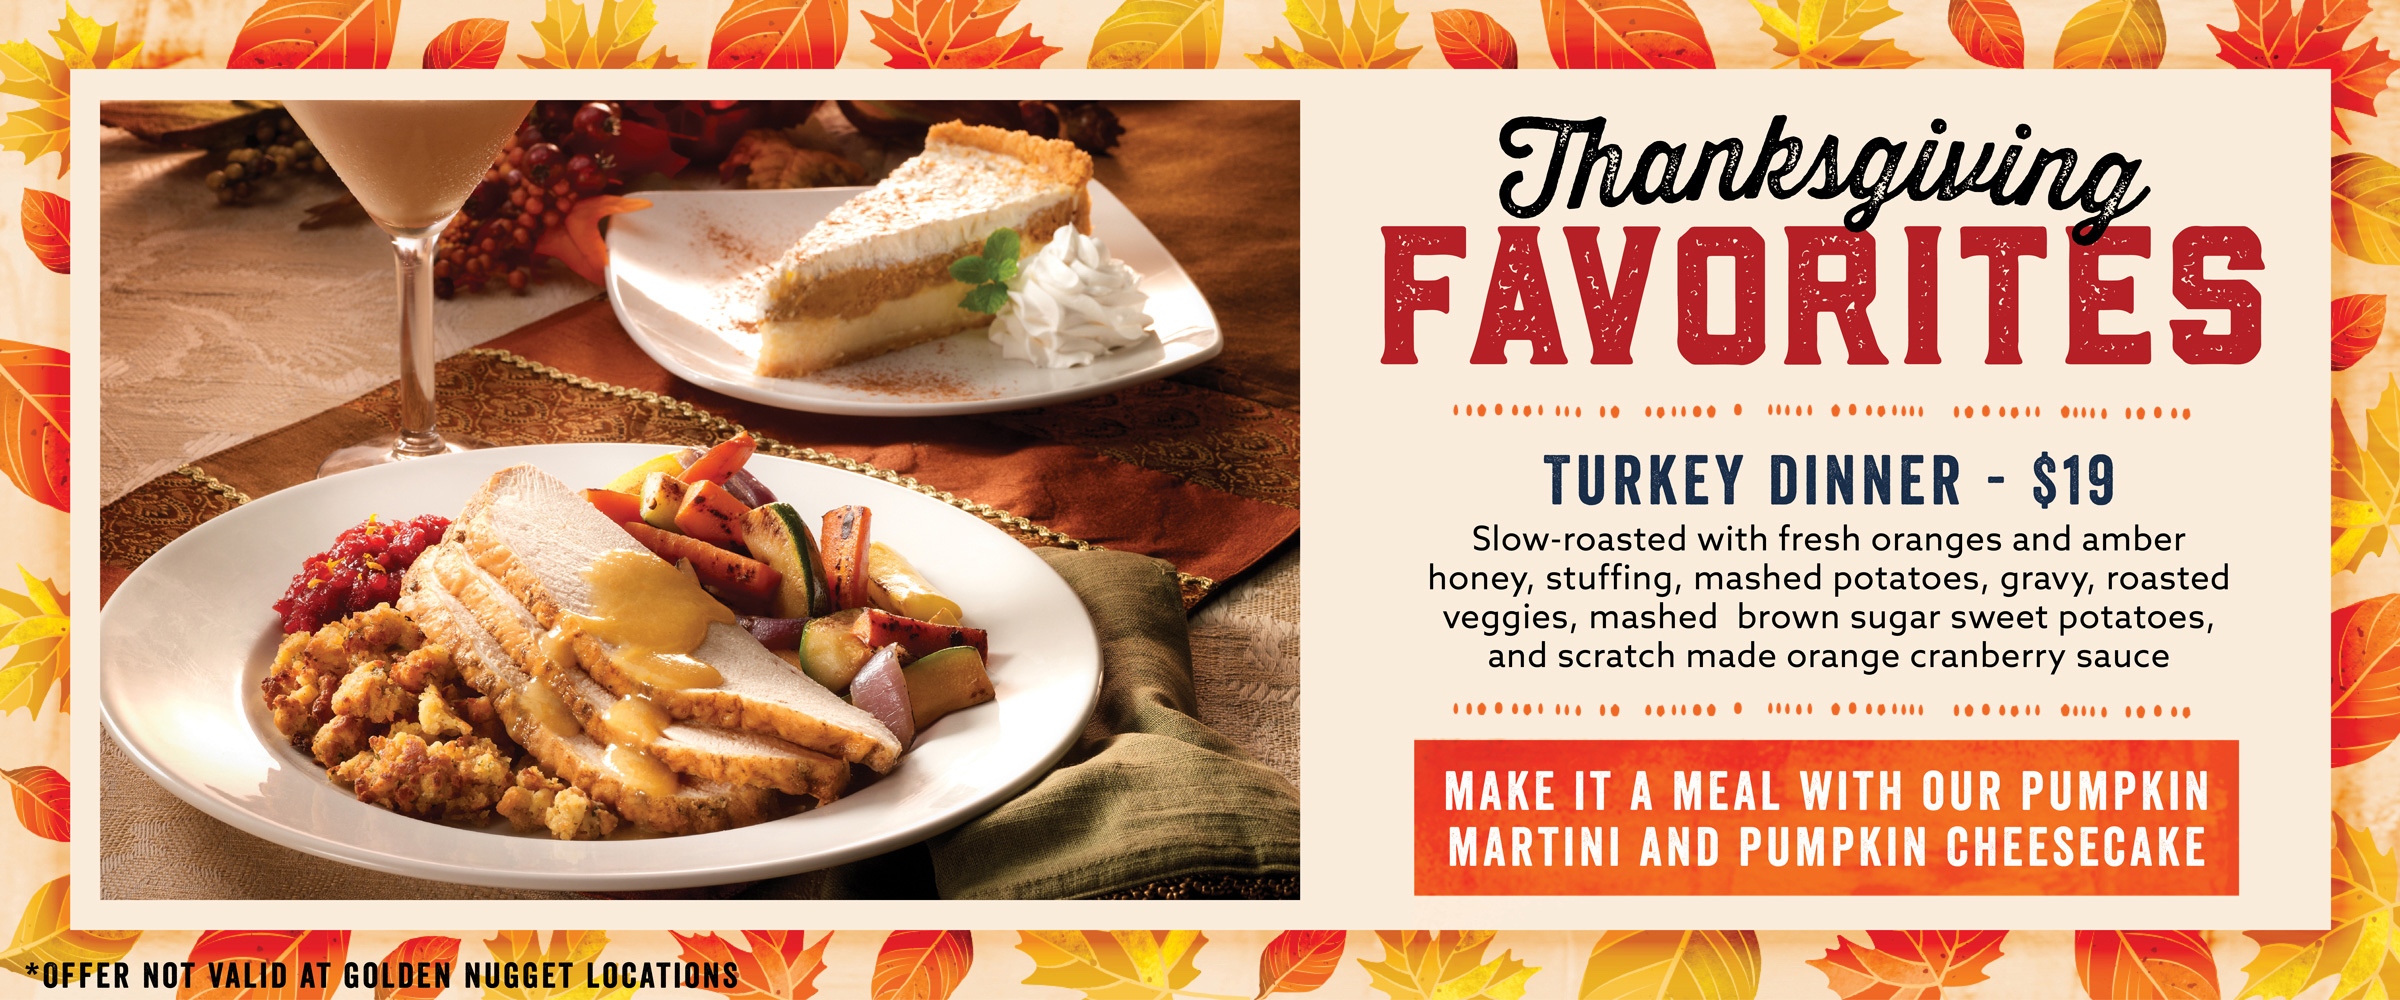 Enjoy Thanksgiving Favorites at Claim Jumper